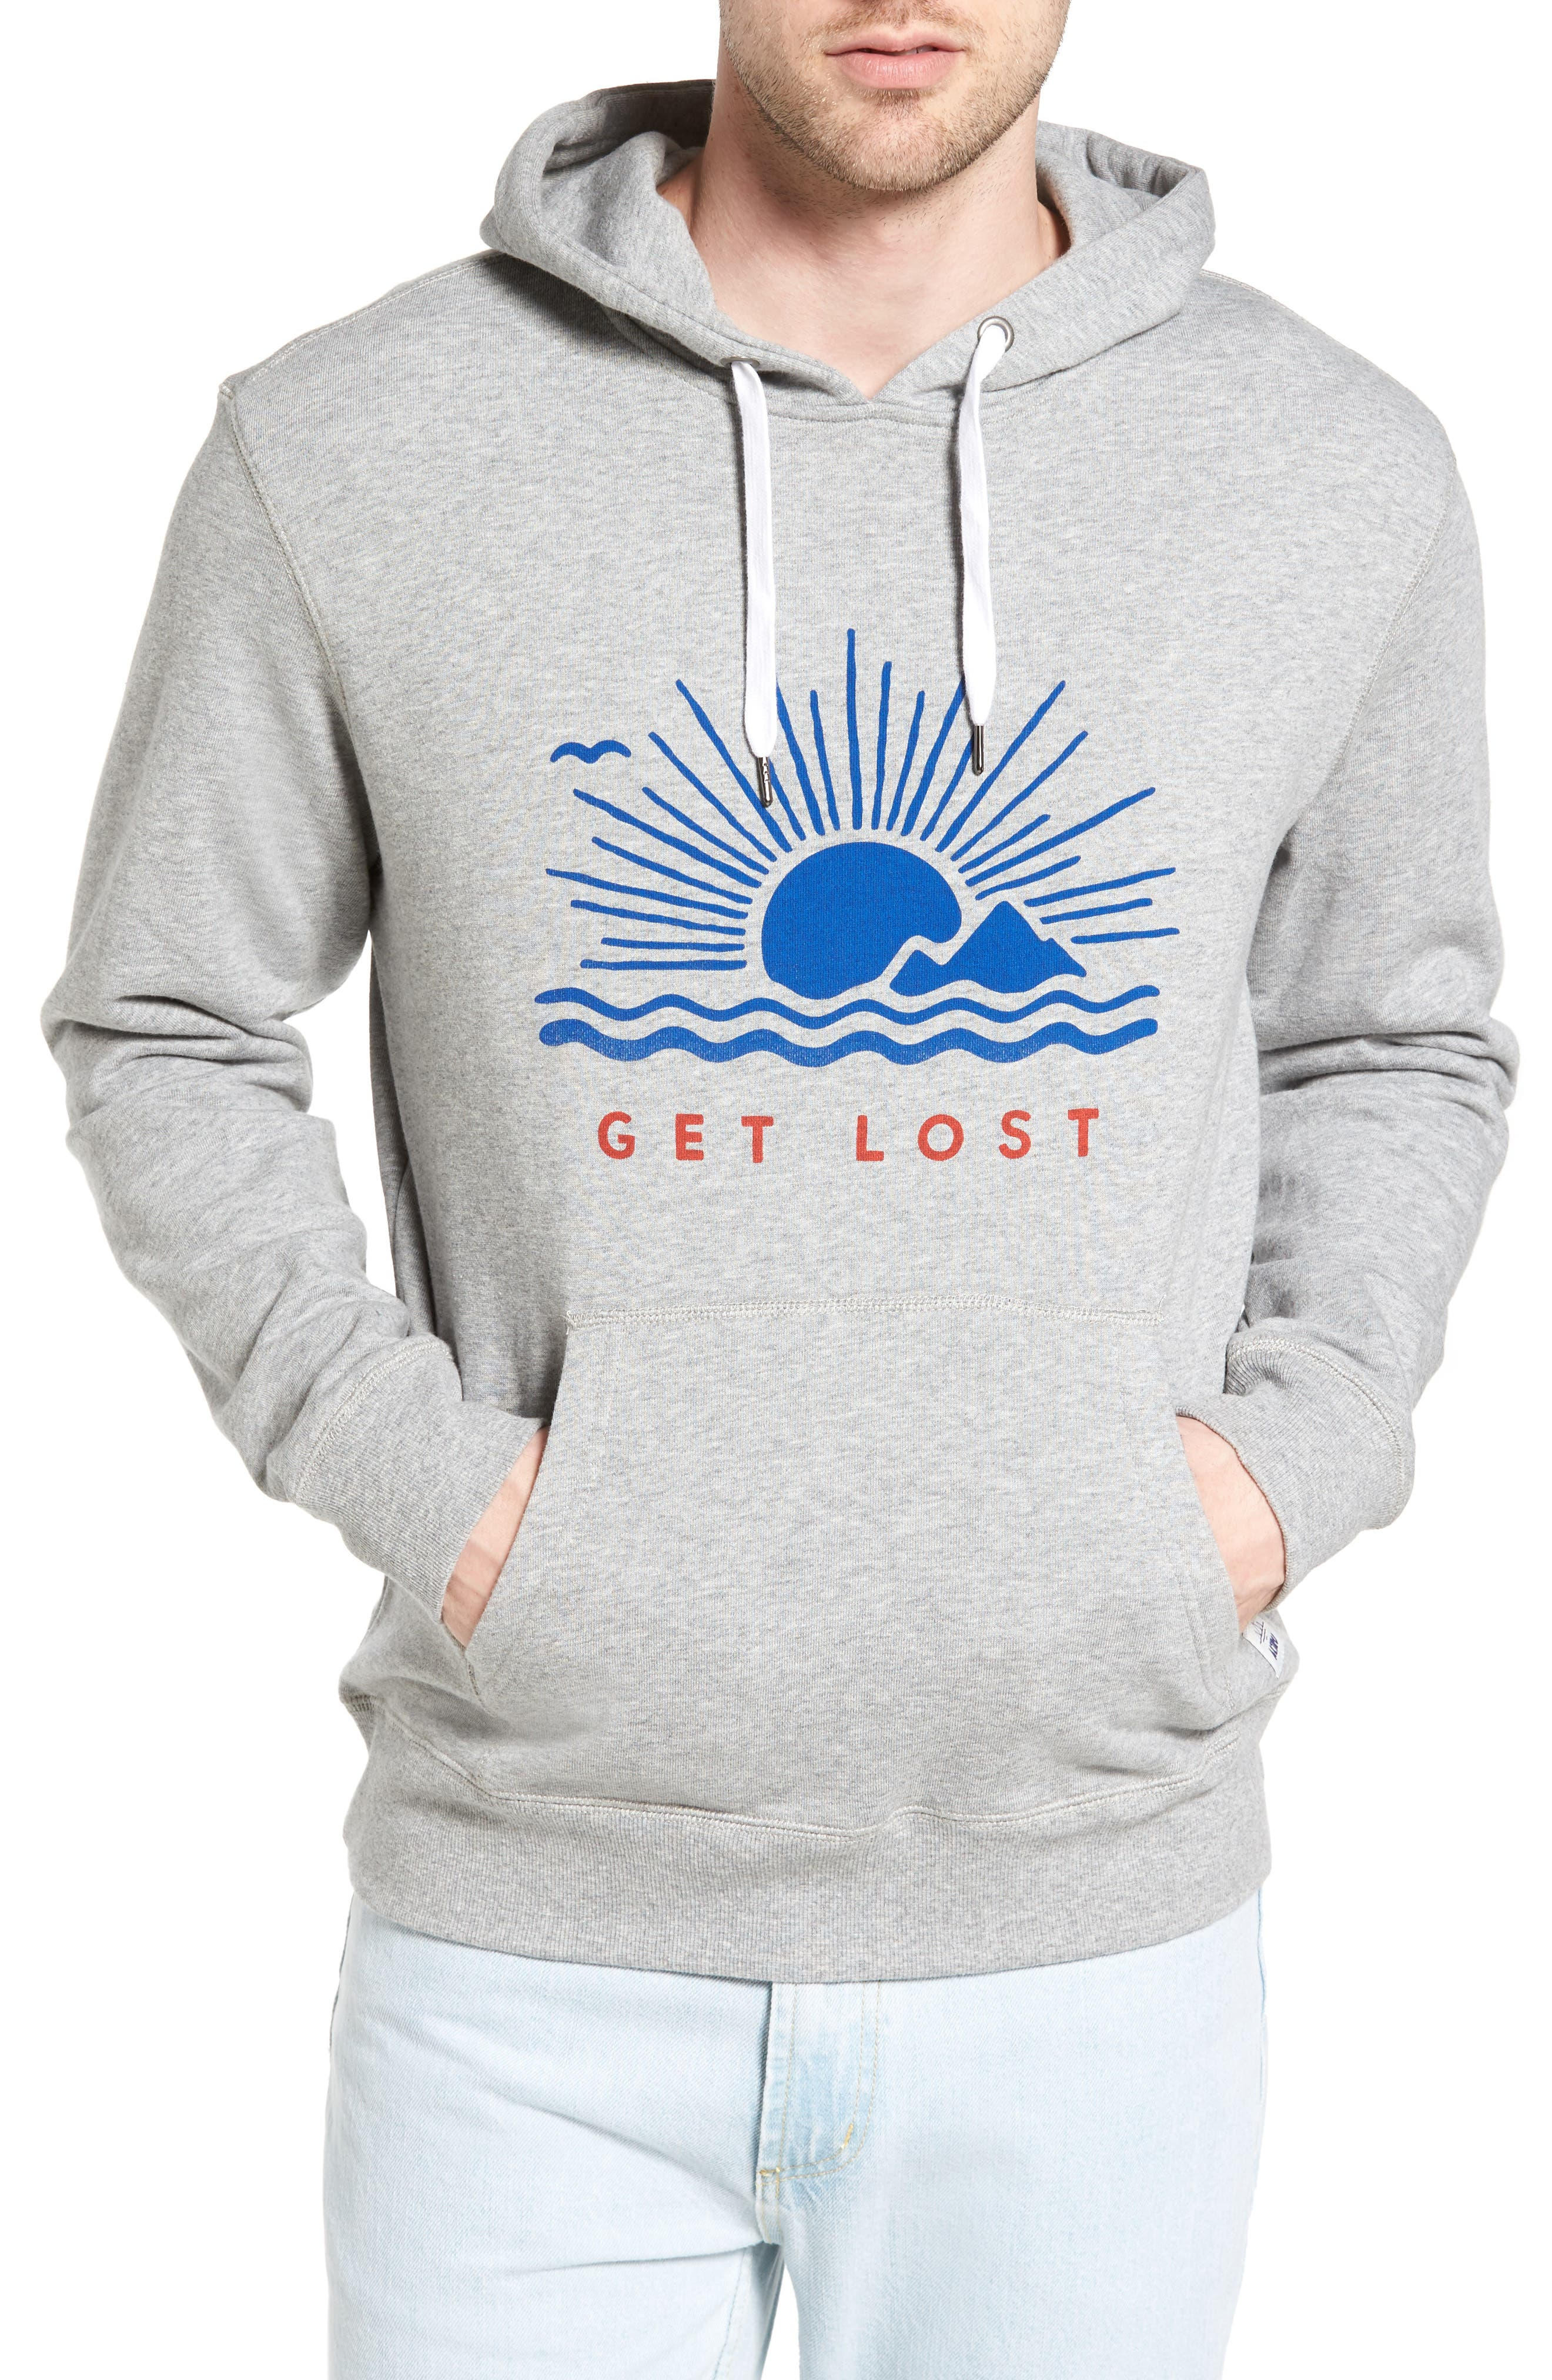 Get Lost French Terry Hoodie,                         Main,                         color, 020